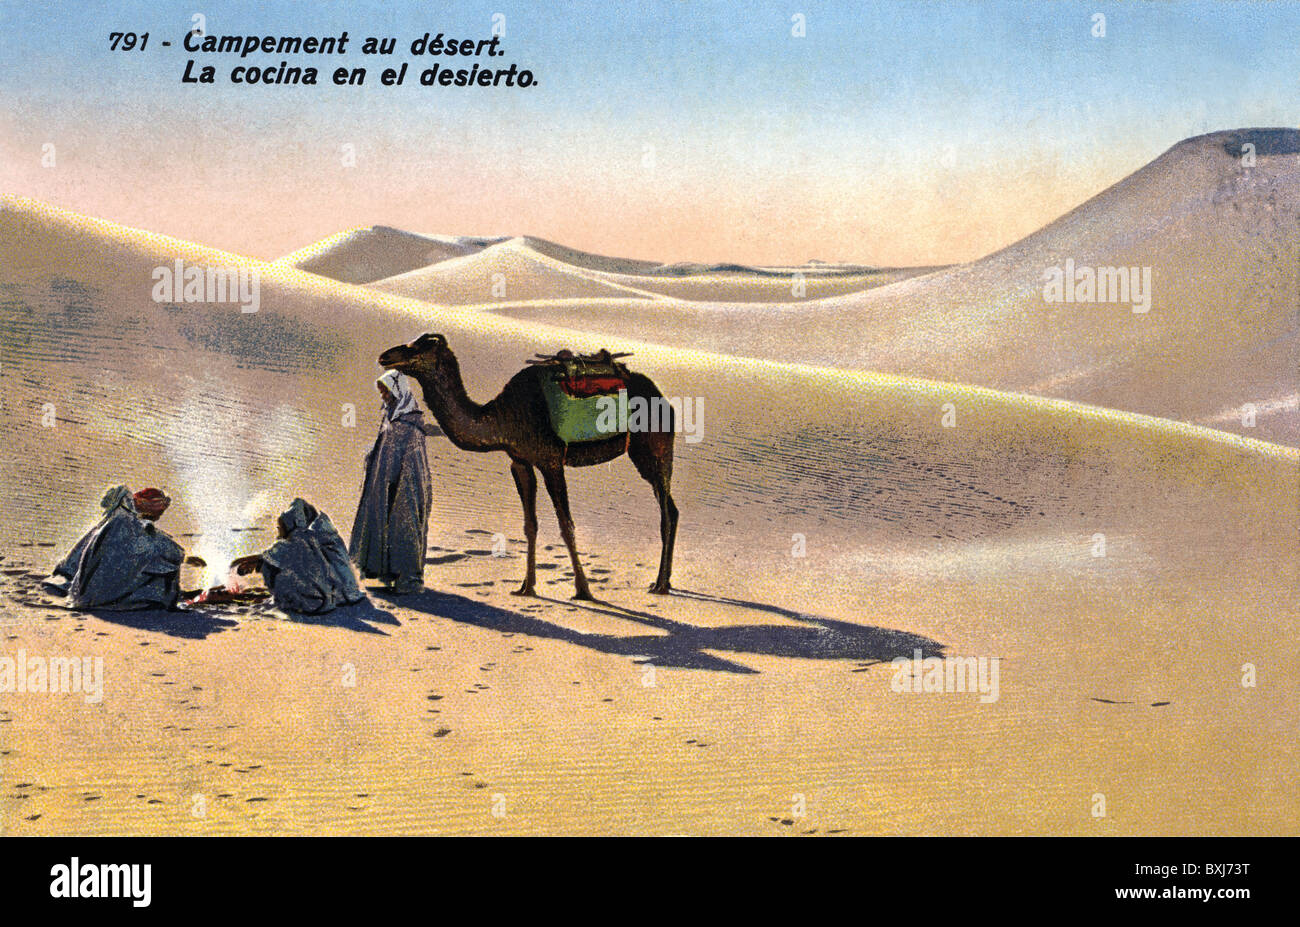 geography / travel, Morocco, Spain, bedouins, Sahara desert, circa 1920, Additional-Rights-Clearences-NA - Stock Image